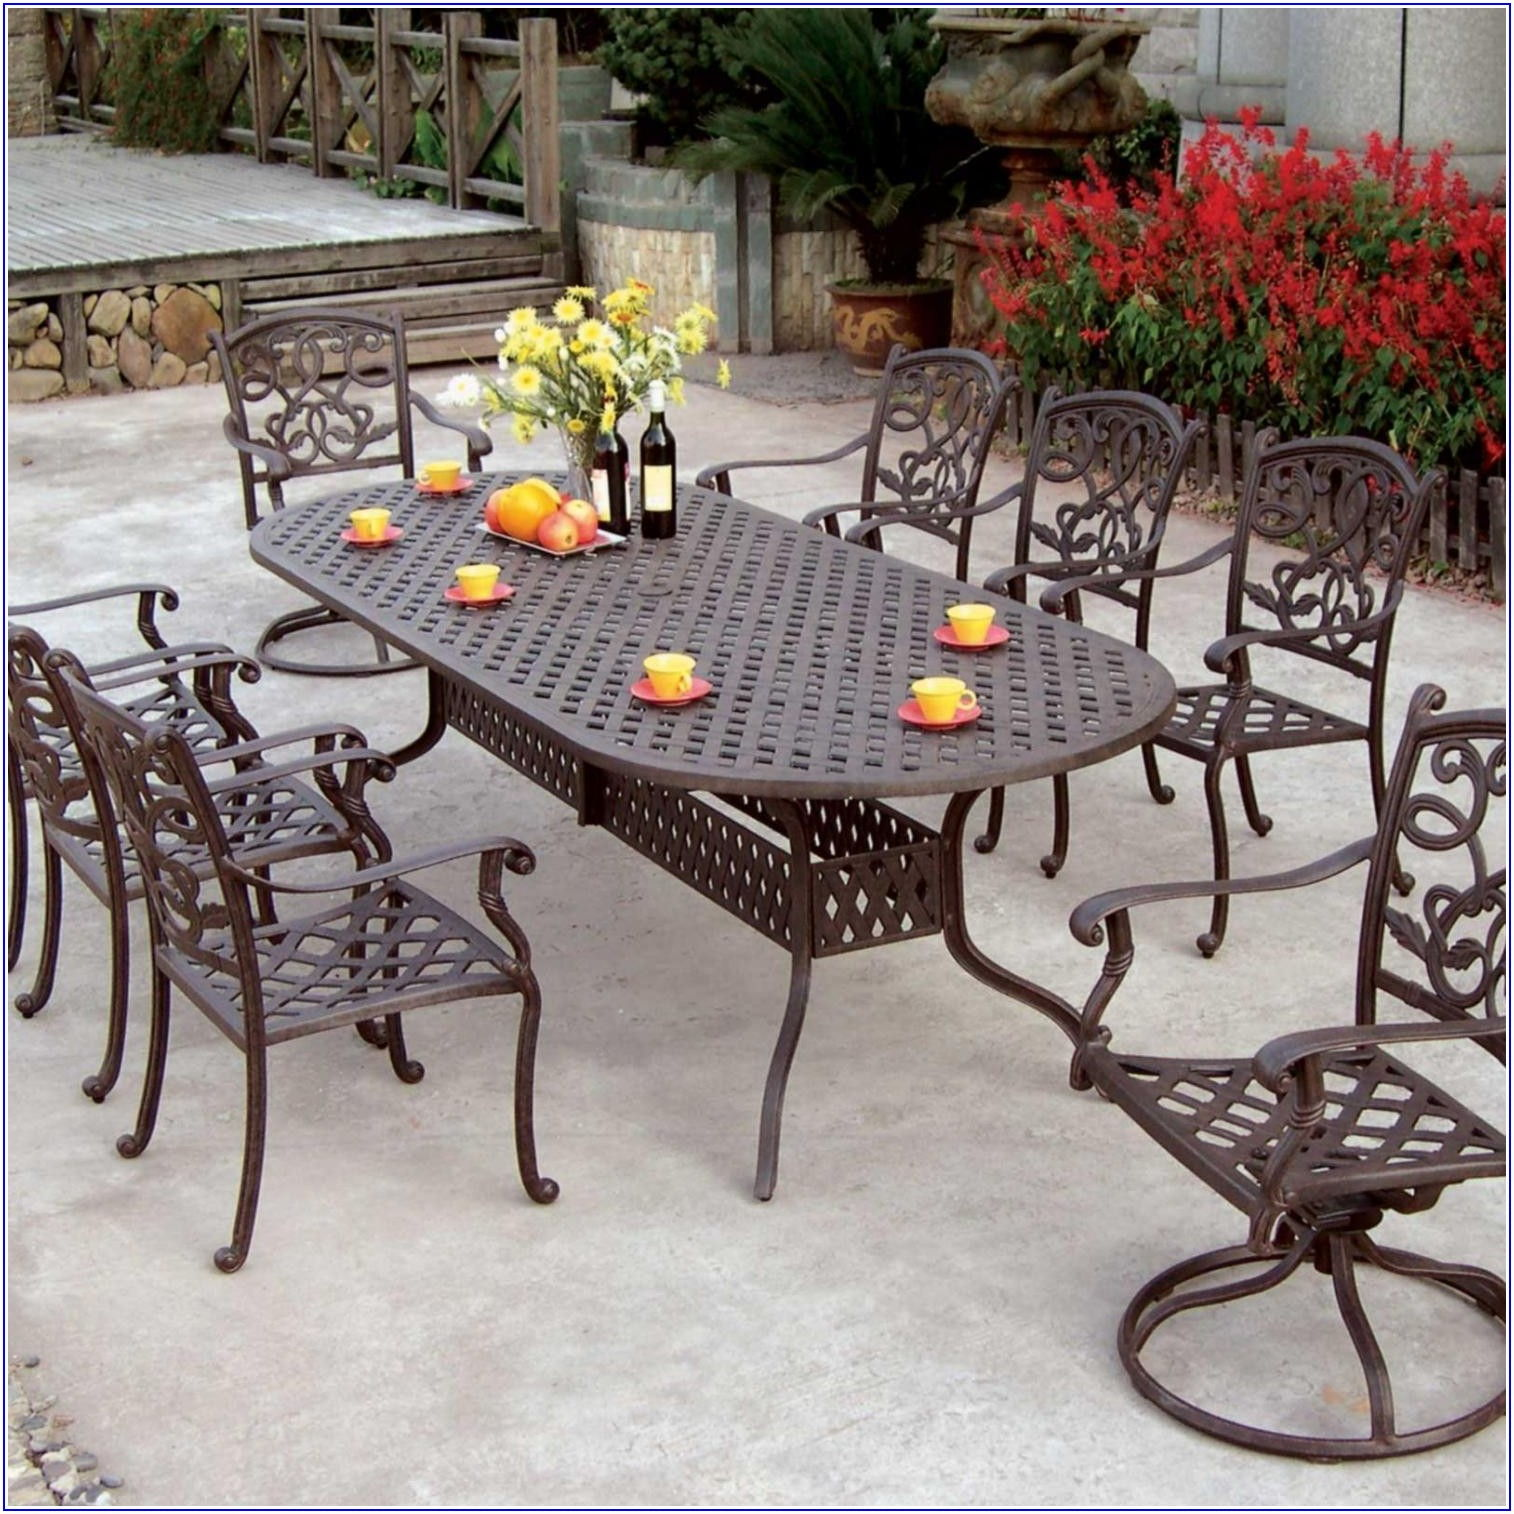 Outdoor Patio Dining Set For 8